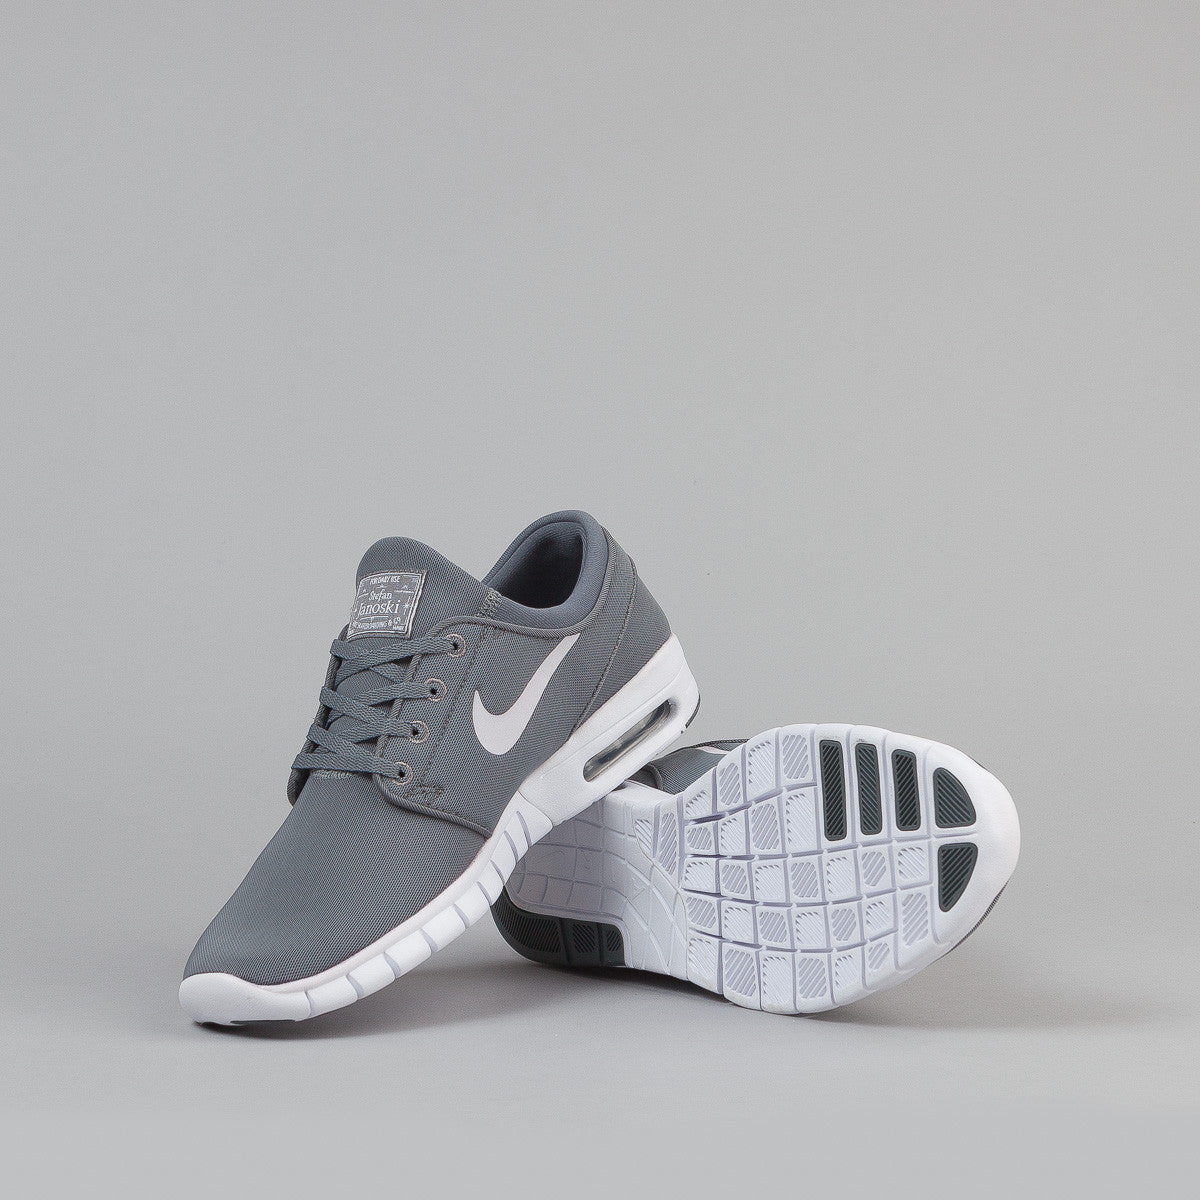 size 40 d03c3 faeae free shipping nike sb stefan janoski max wolf grey available sneakernews  69a66 eac88  promo code for nike sb janoski max grey white 1d88d 45cd0